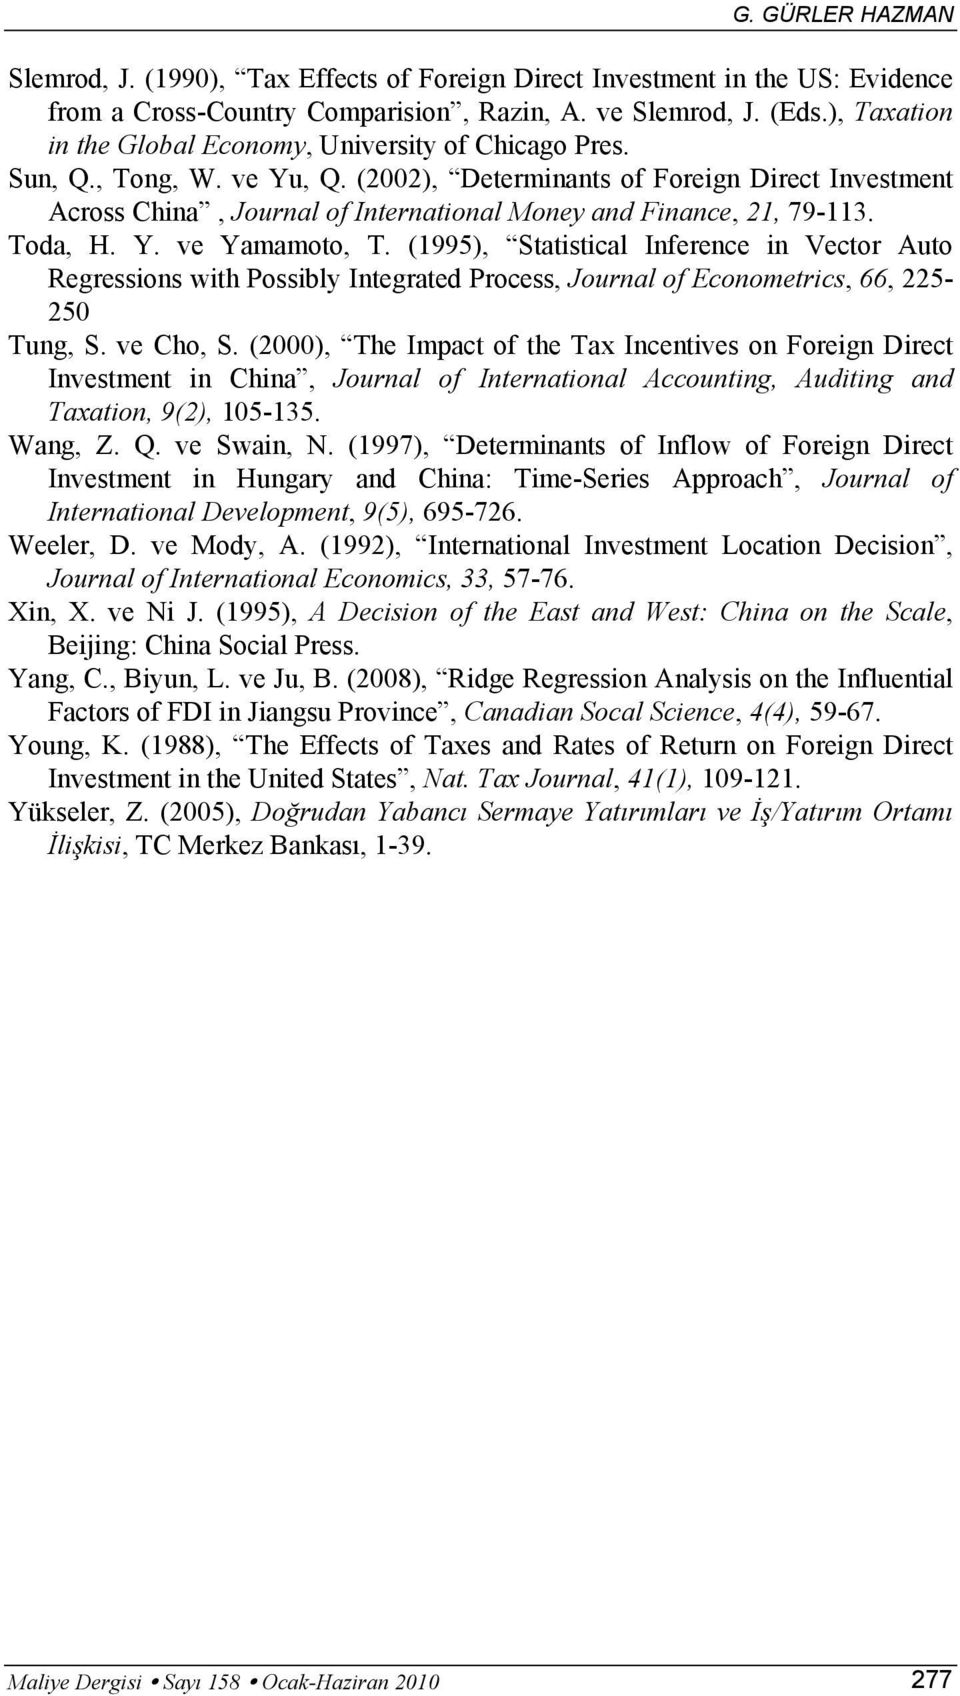 (2002), Determinants of Foreign Direct Investment Across China, Journal of International Money and Finance, 21, 79-113. Toda, H. Y. ve Yamamoto, T.